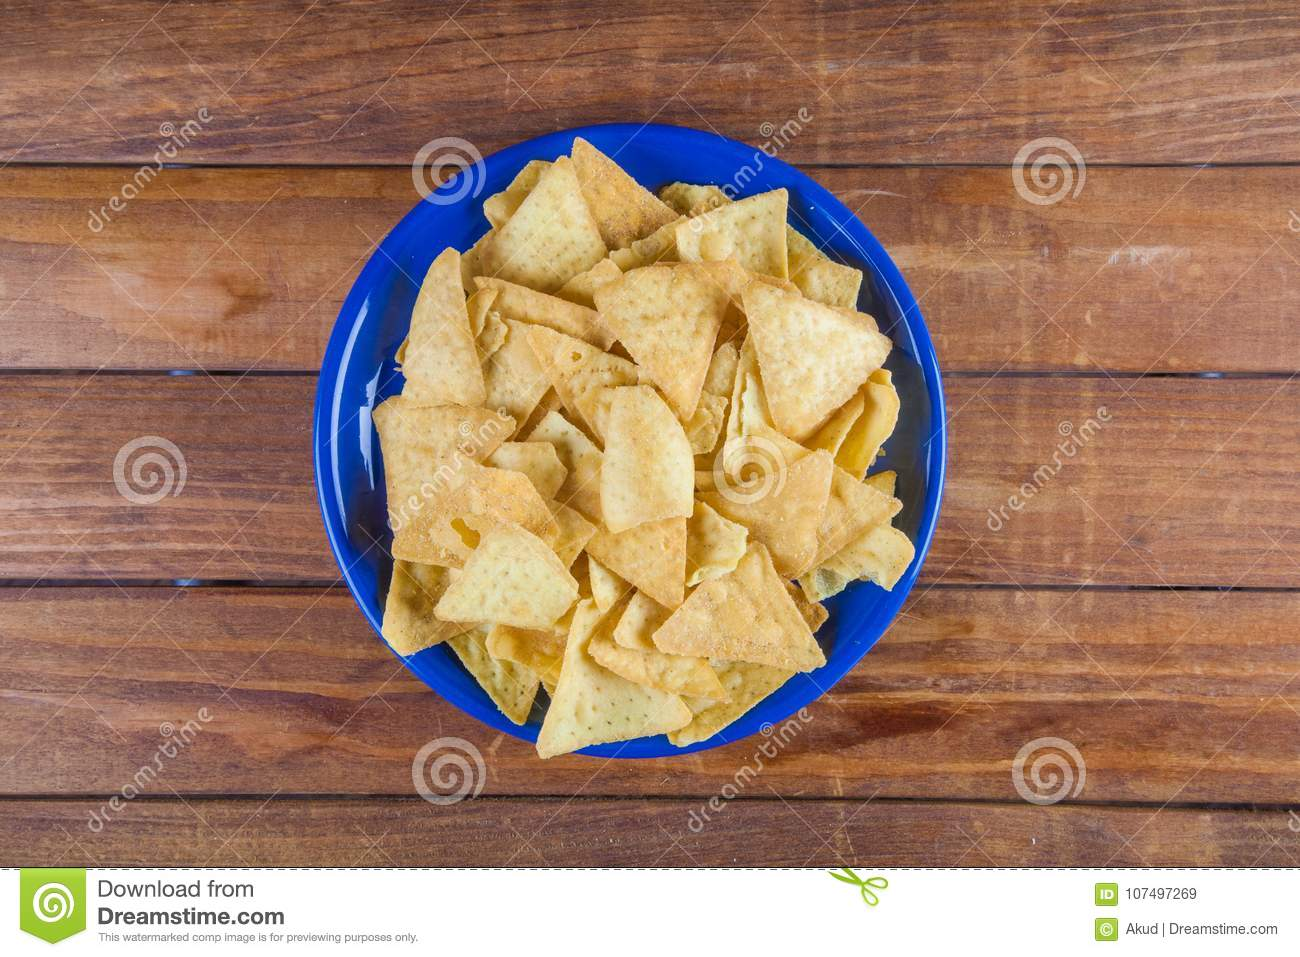 nachos corn chips on wooden talbe stock image image of unhealthy